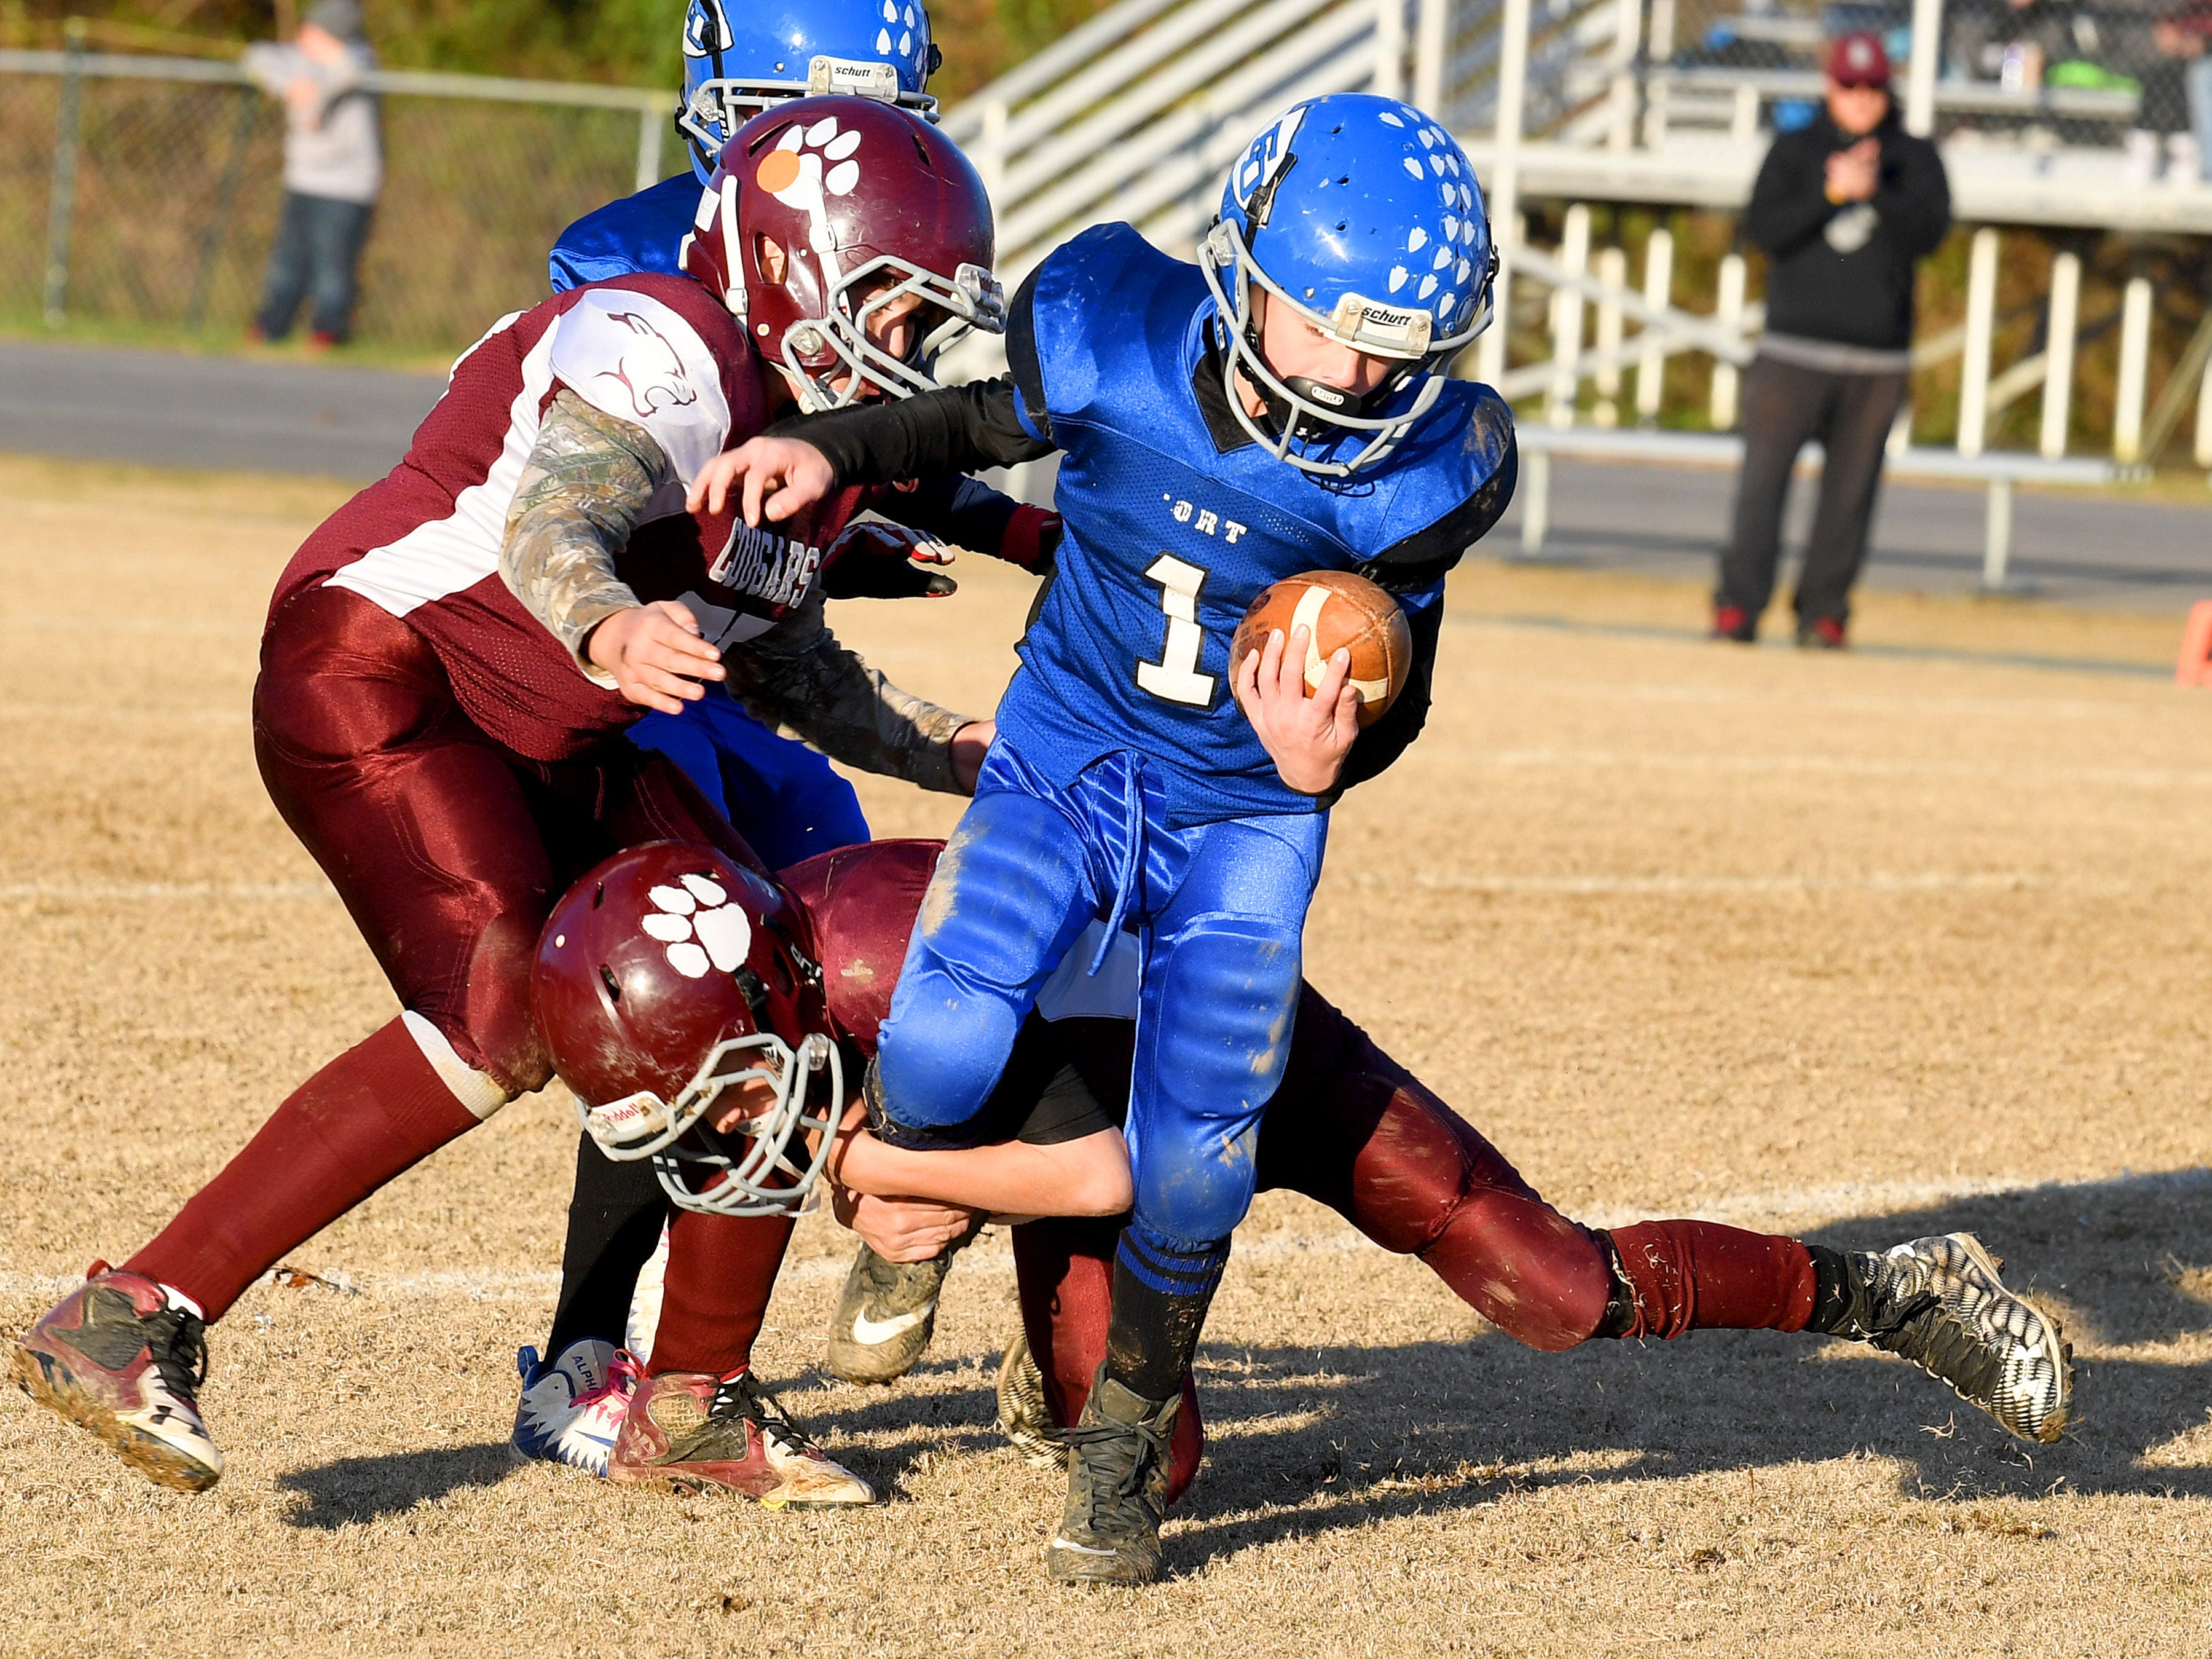 Fort Defiance's Bradley Hebb struggles to keep moving with the ball as he is wrapped up around the leg during the Augusta County Quarterback Club Juniors Super Bowl in Fishersville on Sunday, Nov. 11, 2018. Fort Defiance beats Stuarts Draft, 13-12.